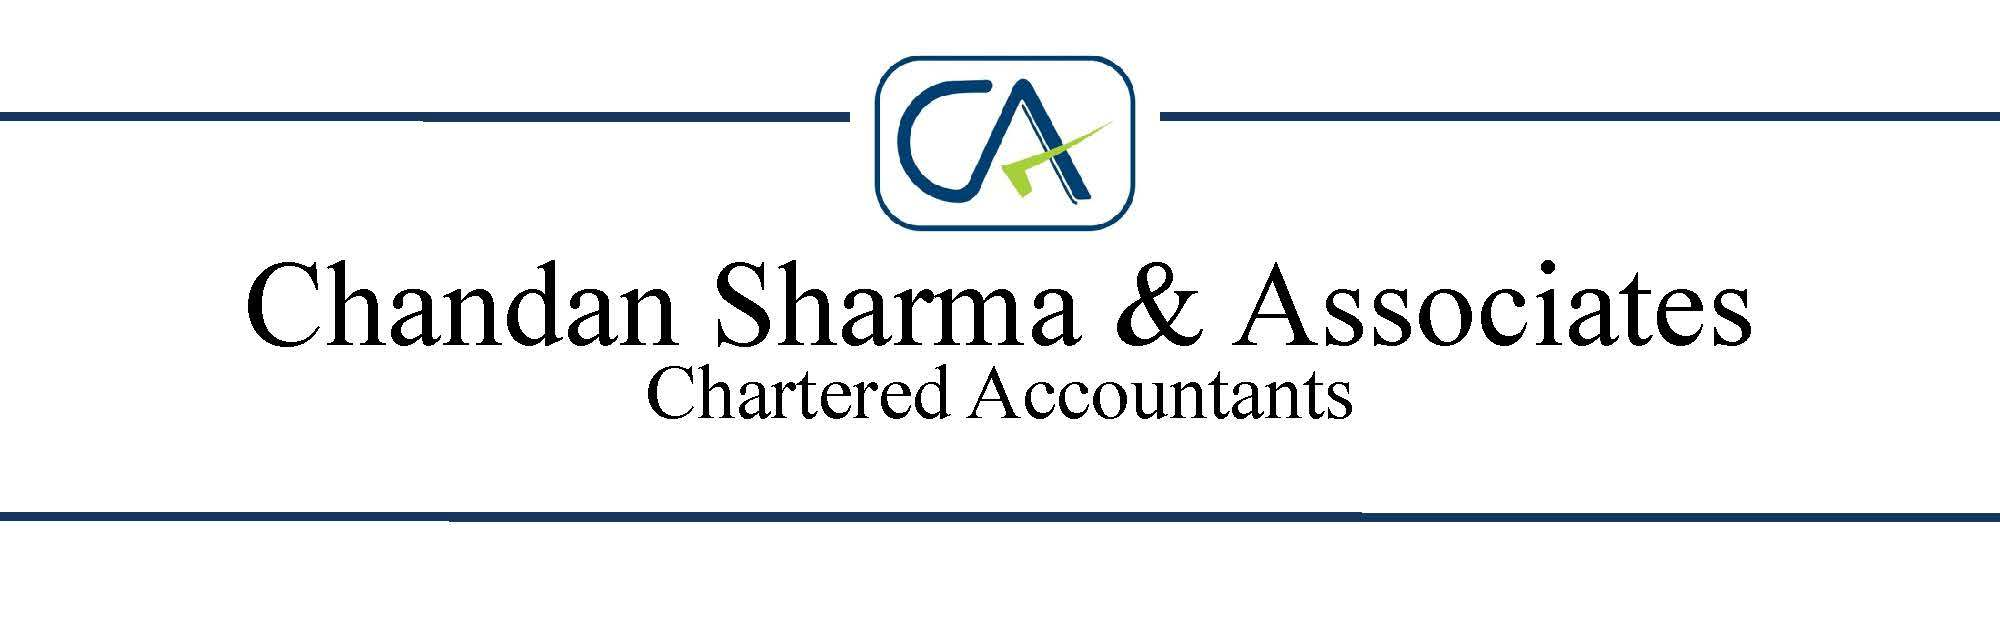 Chandan Sharma & Associates